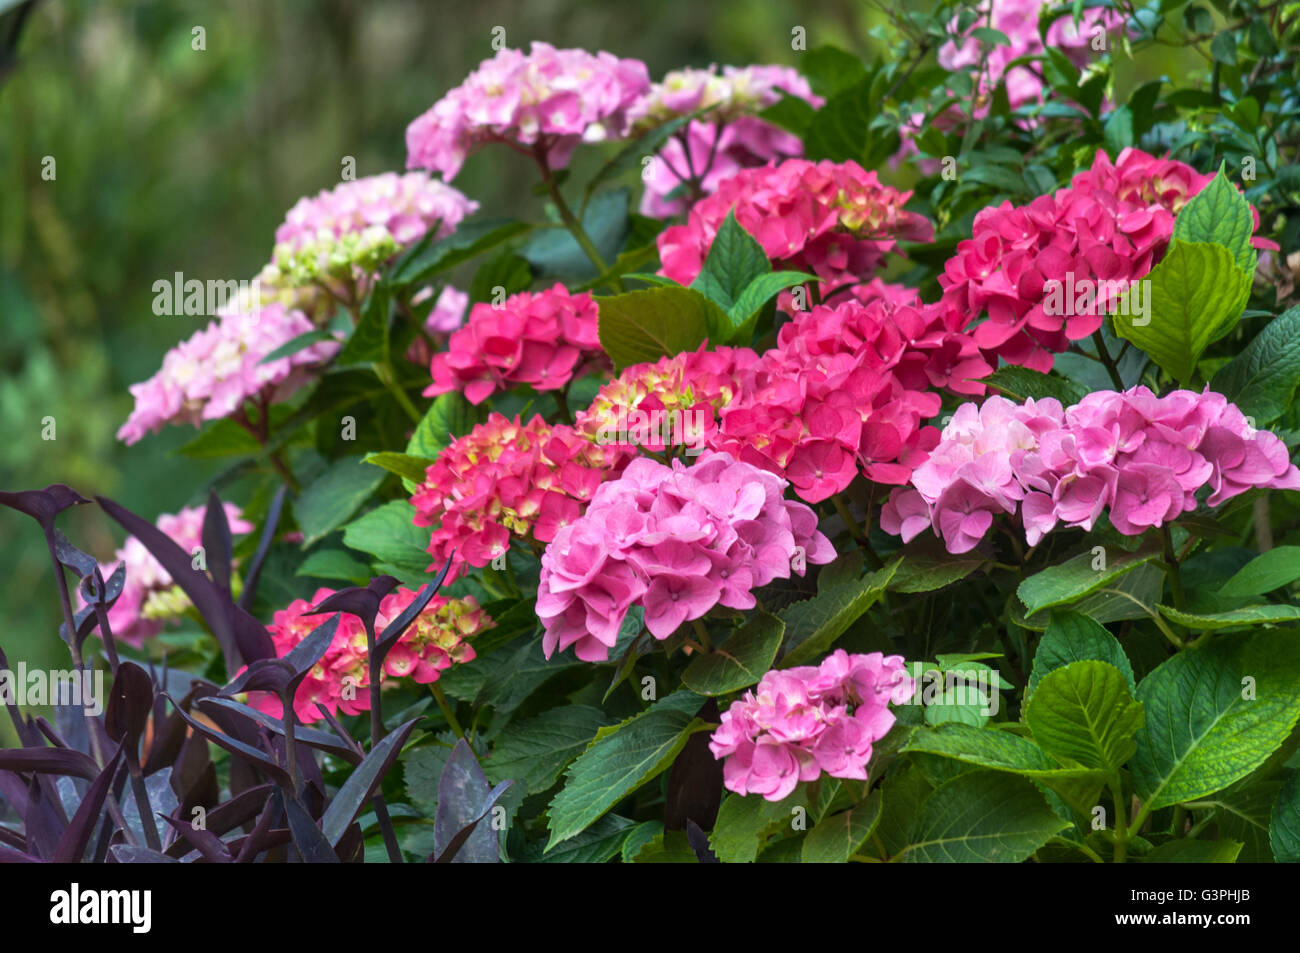 pink hydrangea blossom flower fresh stockfotos pink hydrangea blossom flower fresh bilder alamy. Black Bedroom Furniture Sets. Home Design Ideas